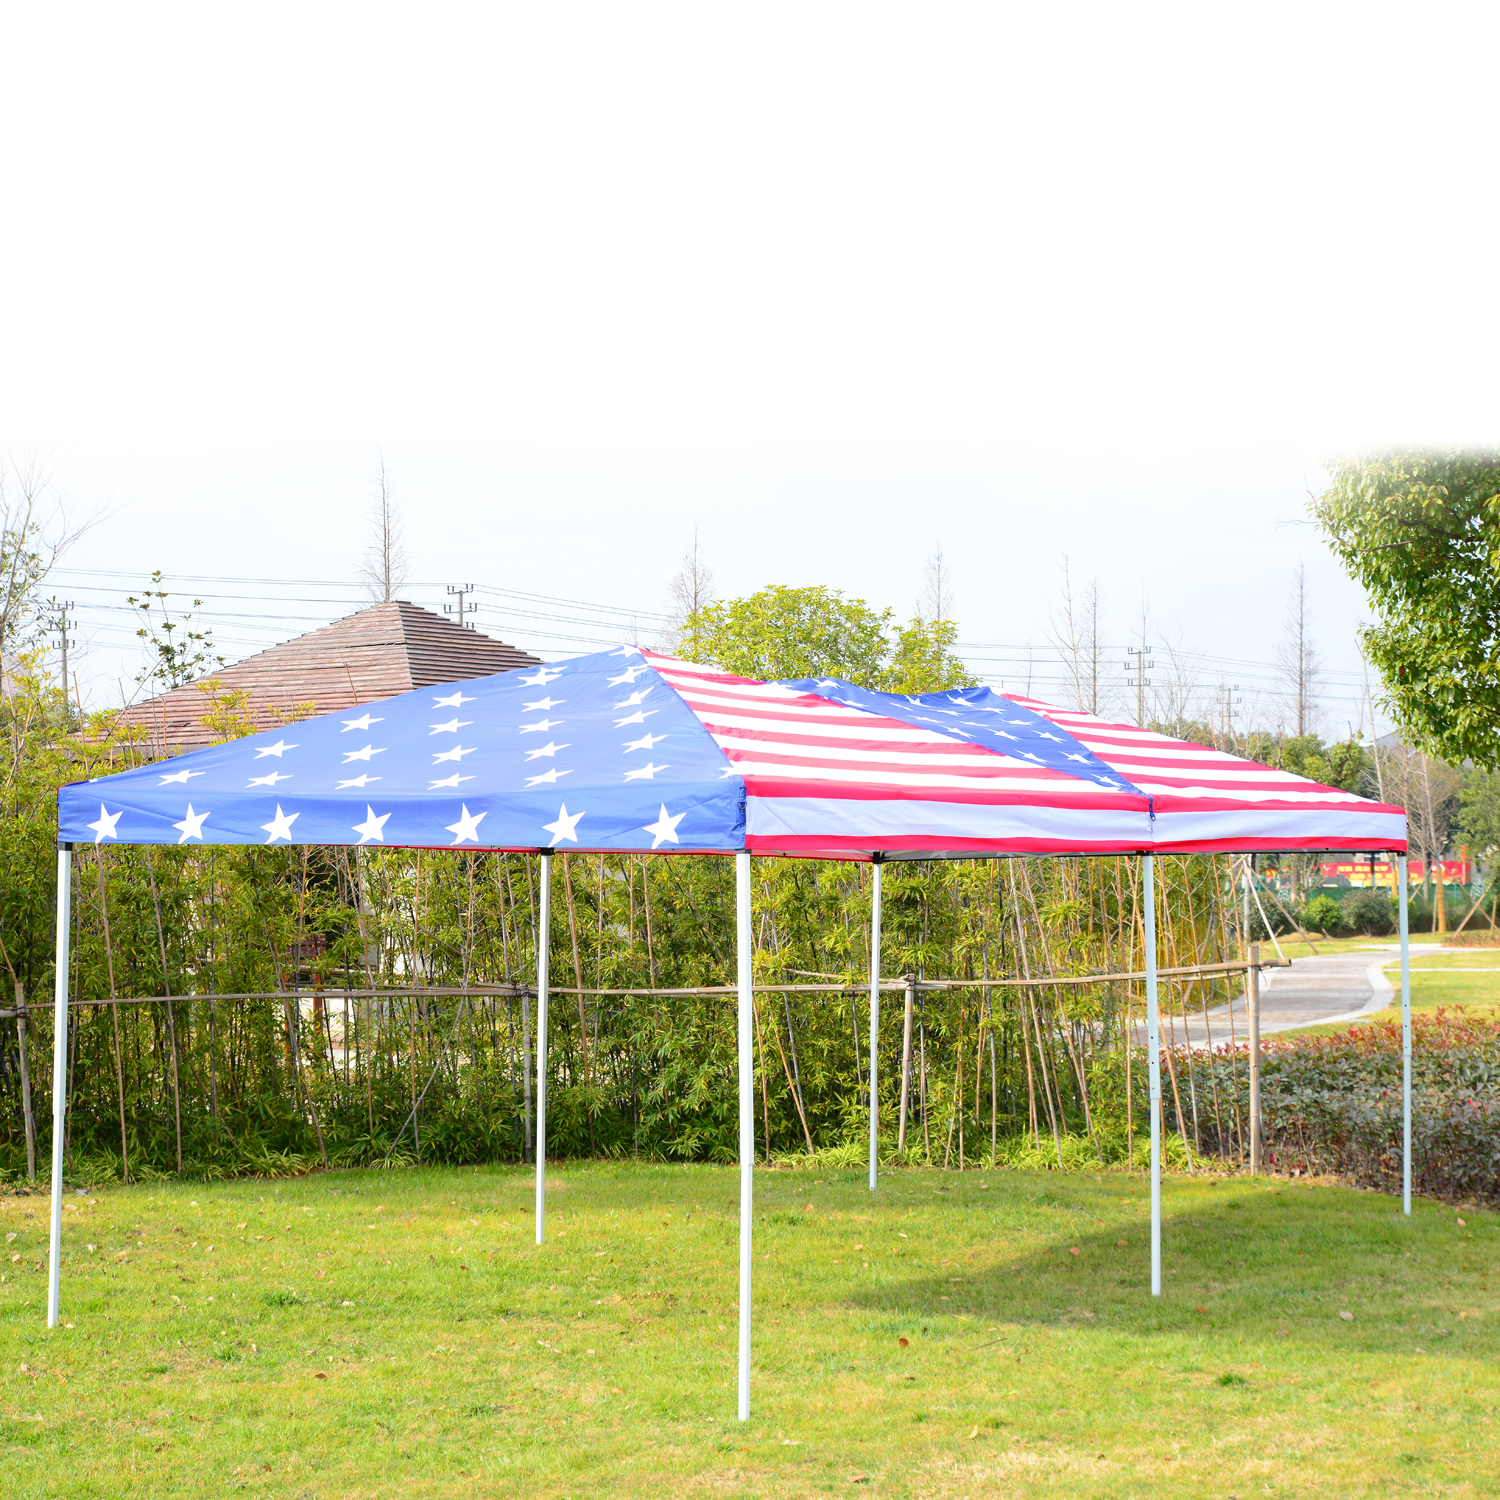 10x20 Pop up Canopy Tent with Netting Outsunny® American Flag Print